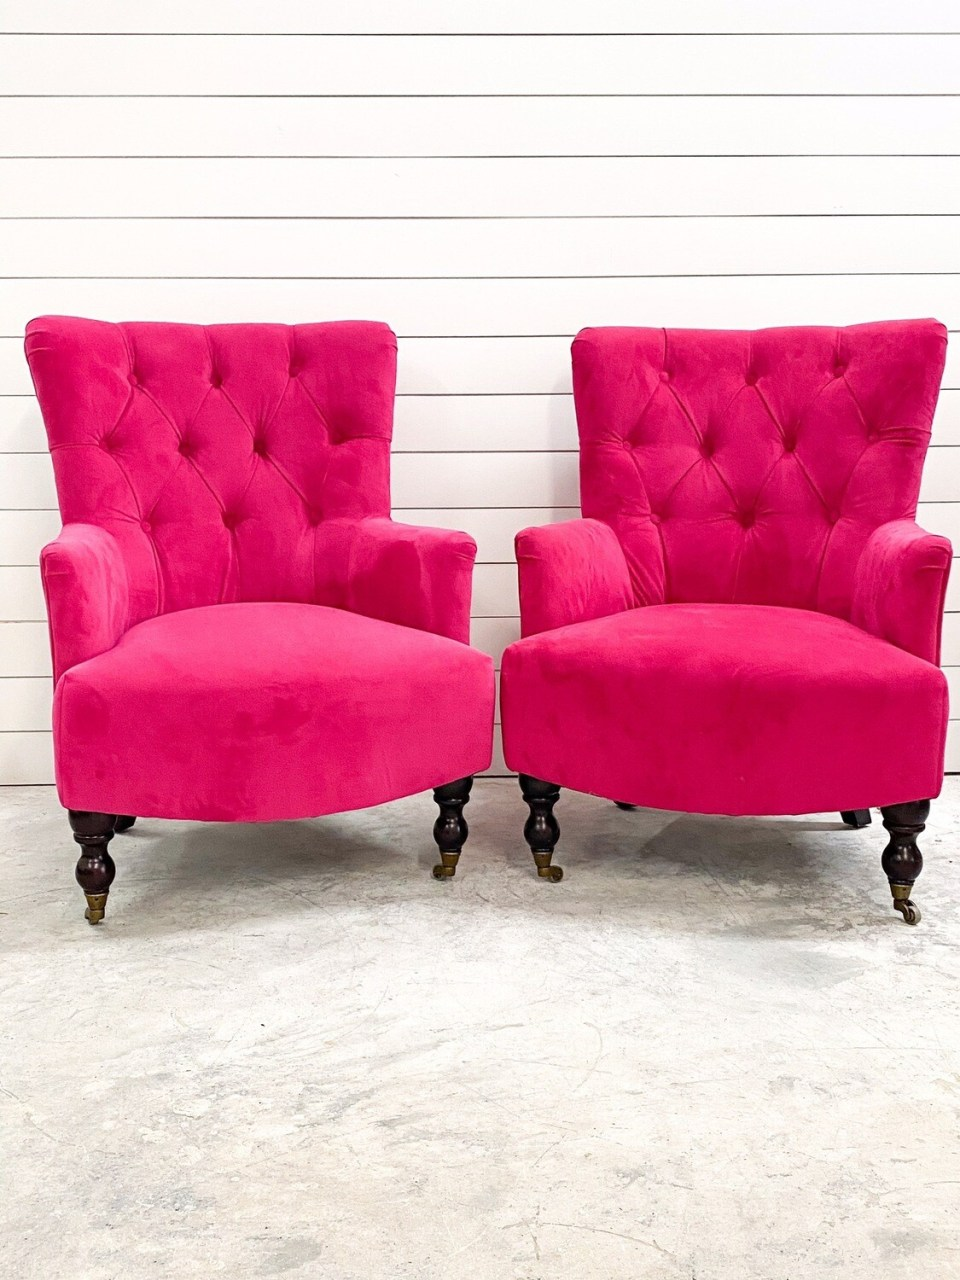 Louise Hot Pink Chair